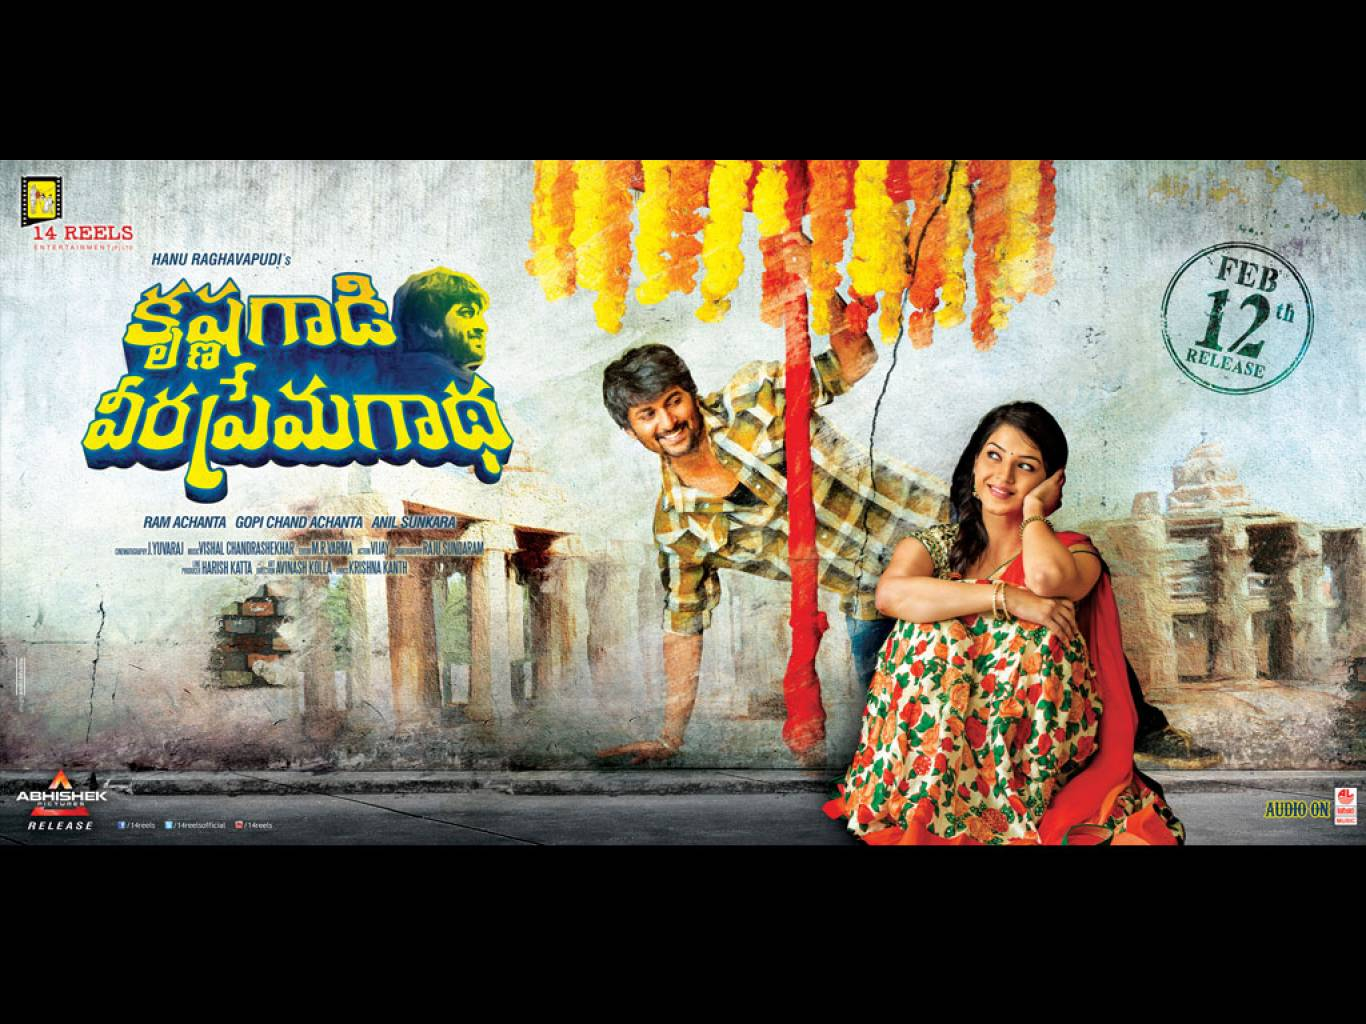 Krishna Gadi Veera Prema Wallpapers